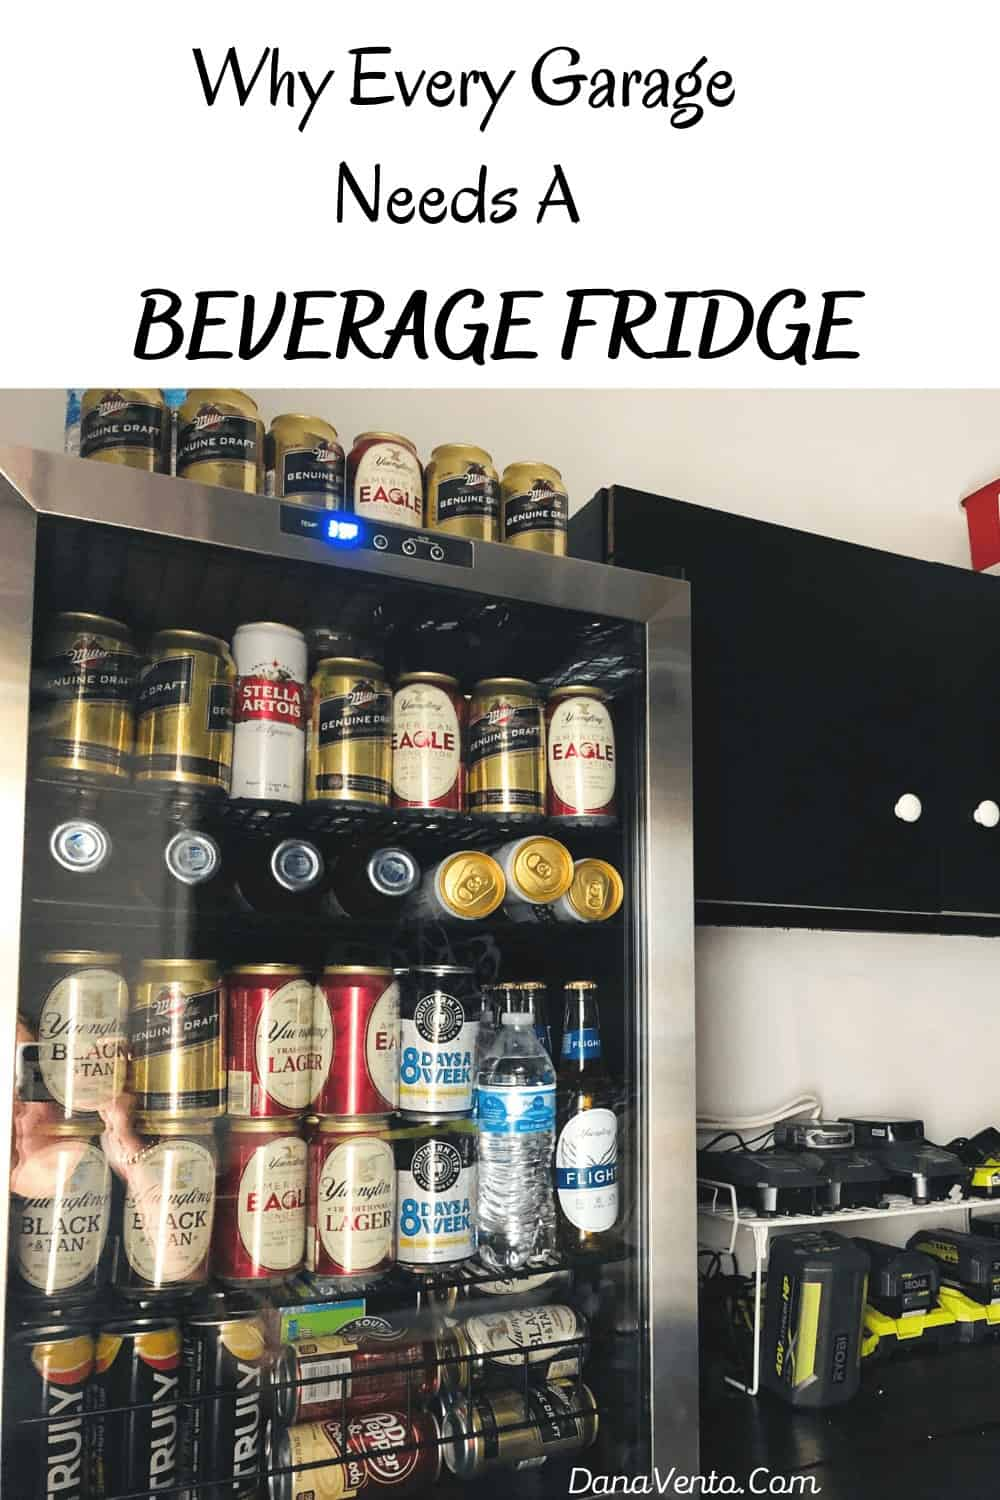 Garage Workbench With Beer and beverage Fridge